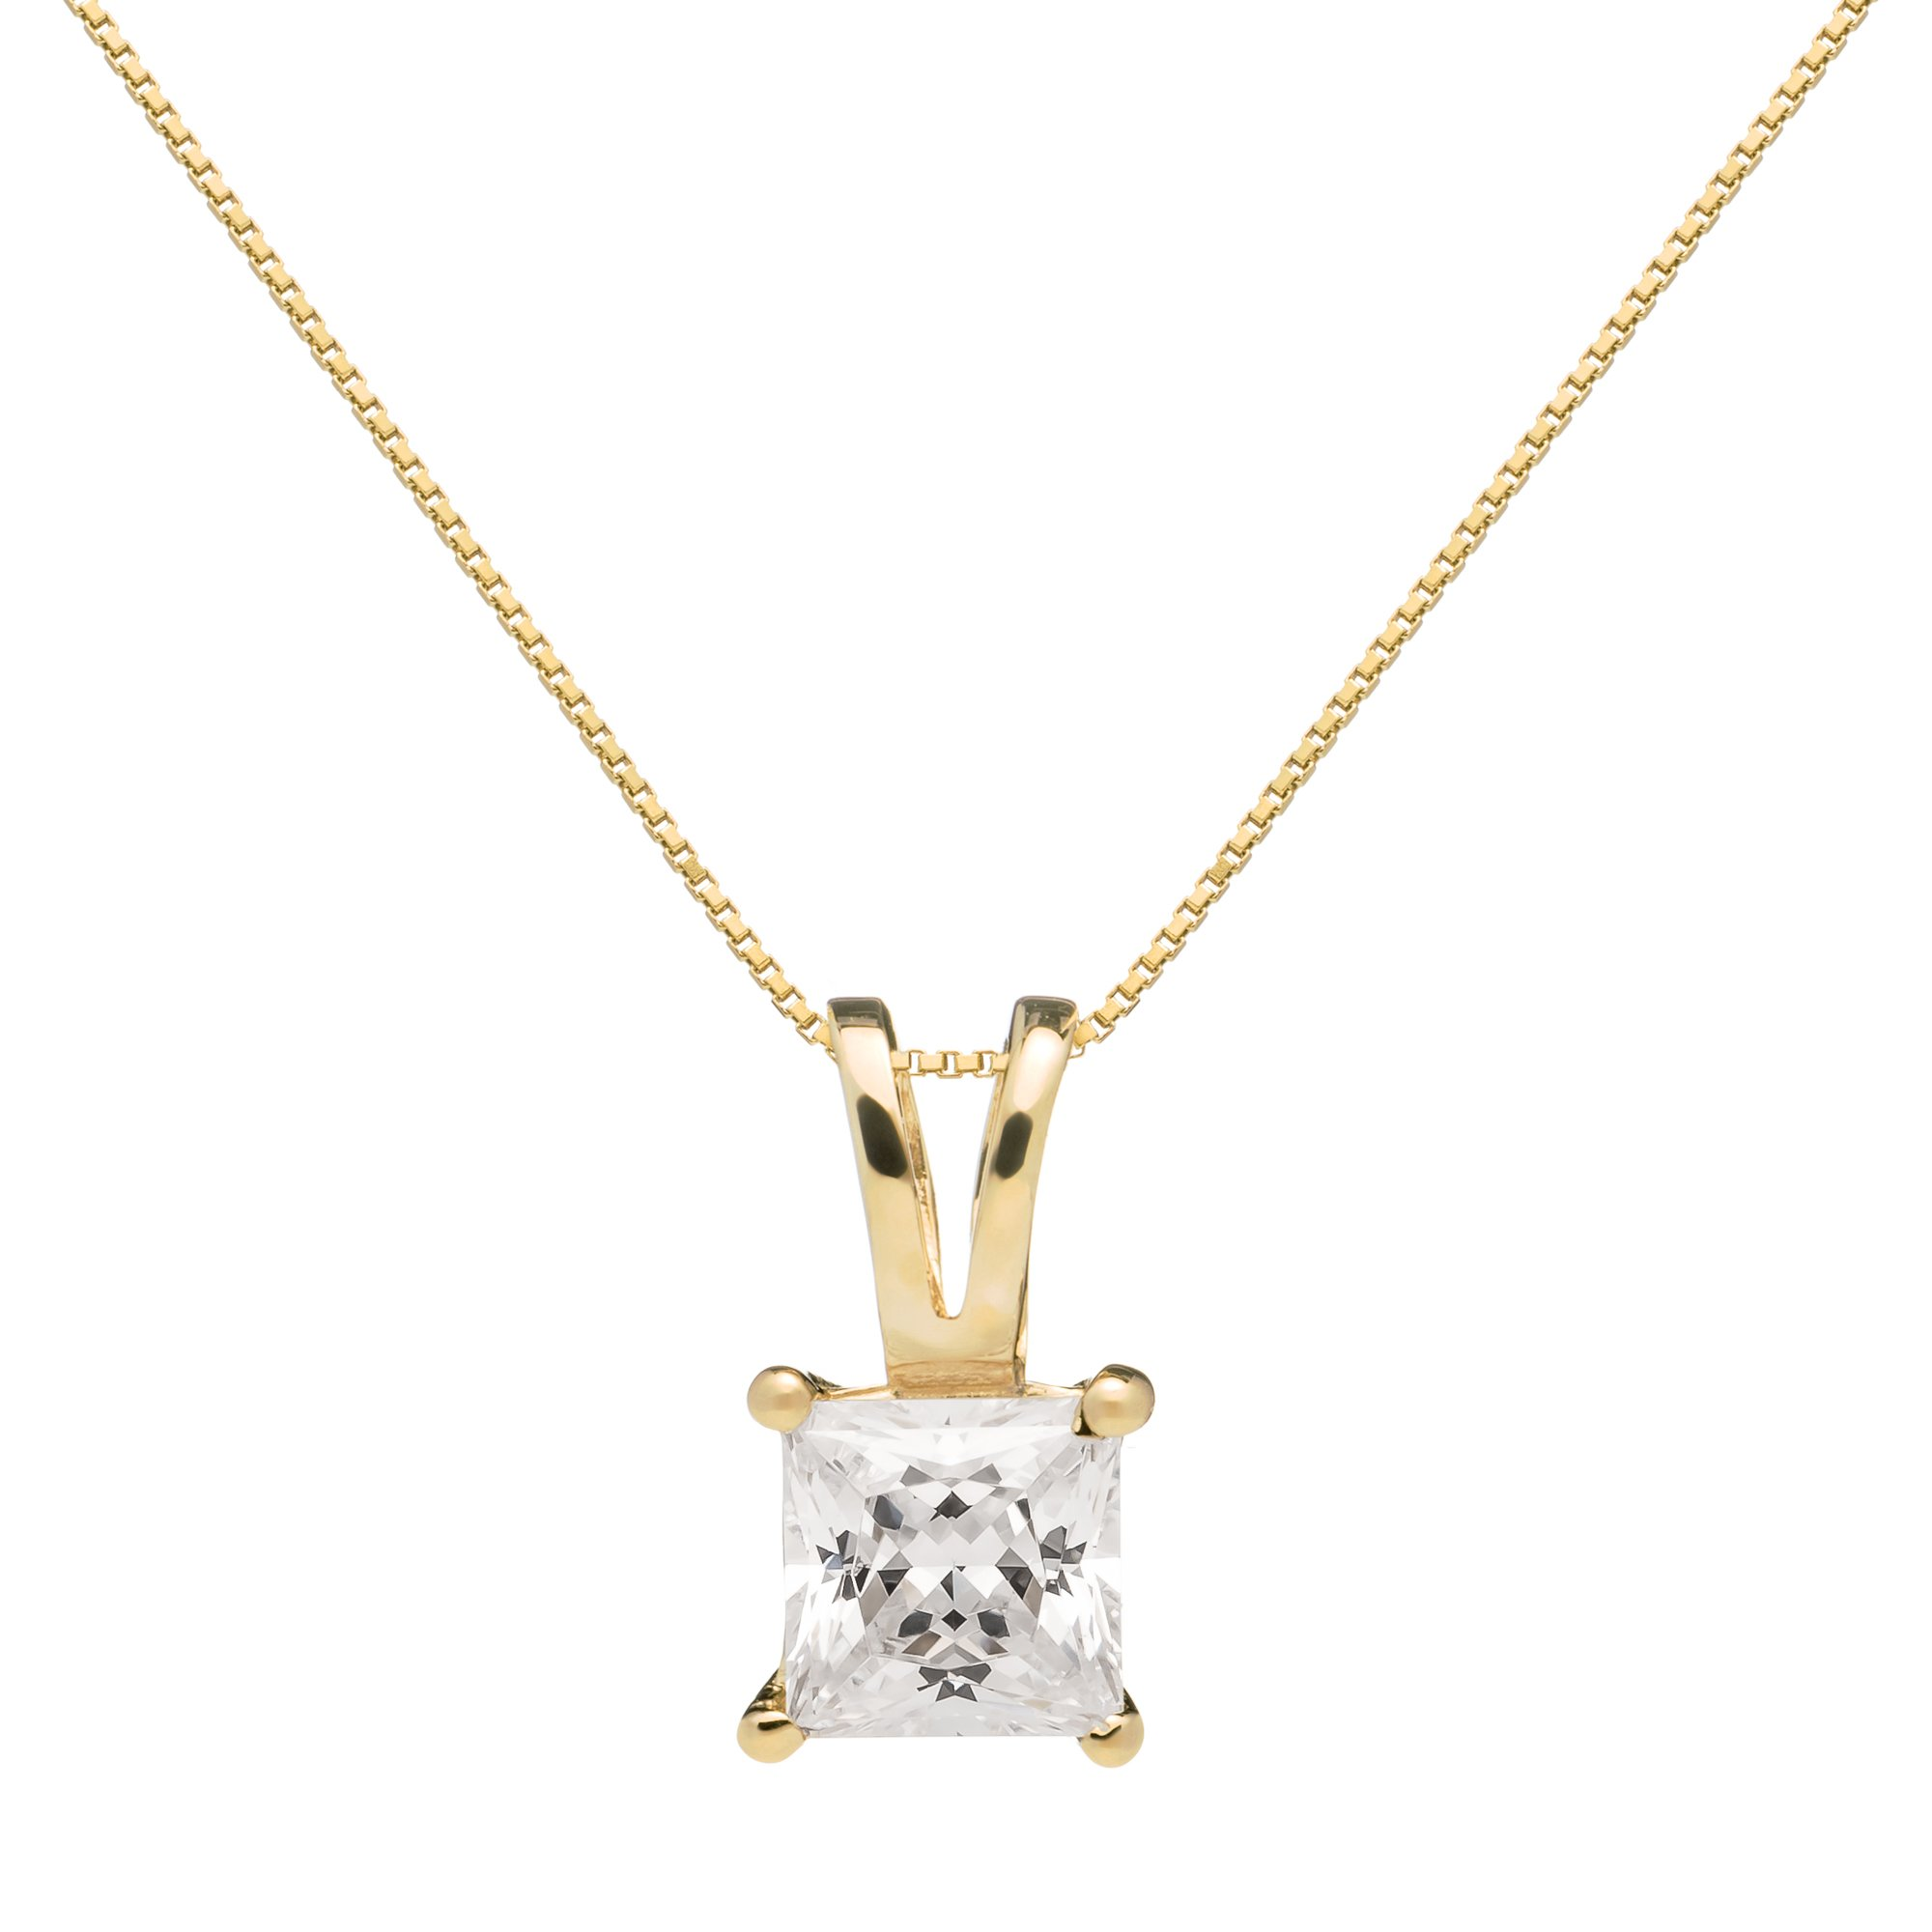 14K Solid Yellow Gold Princess Cut Cubic Zirconia Solitaire Pendant Necklace (1 carat), 18 inch Box Link Chain, Gift Box